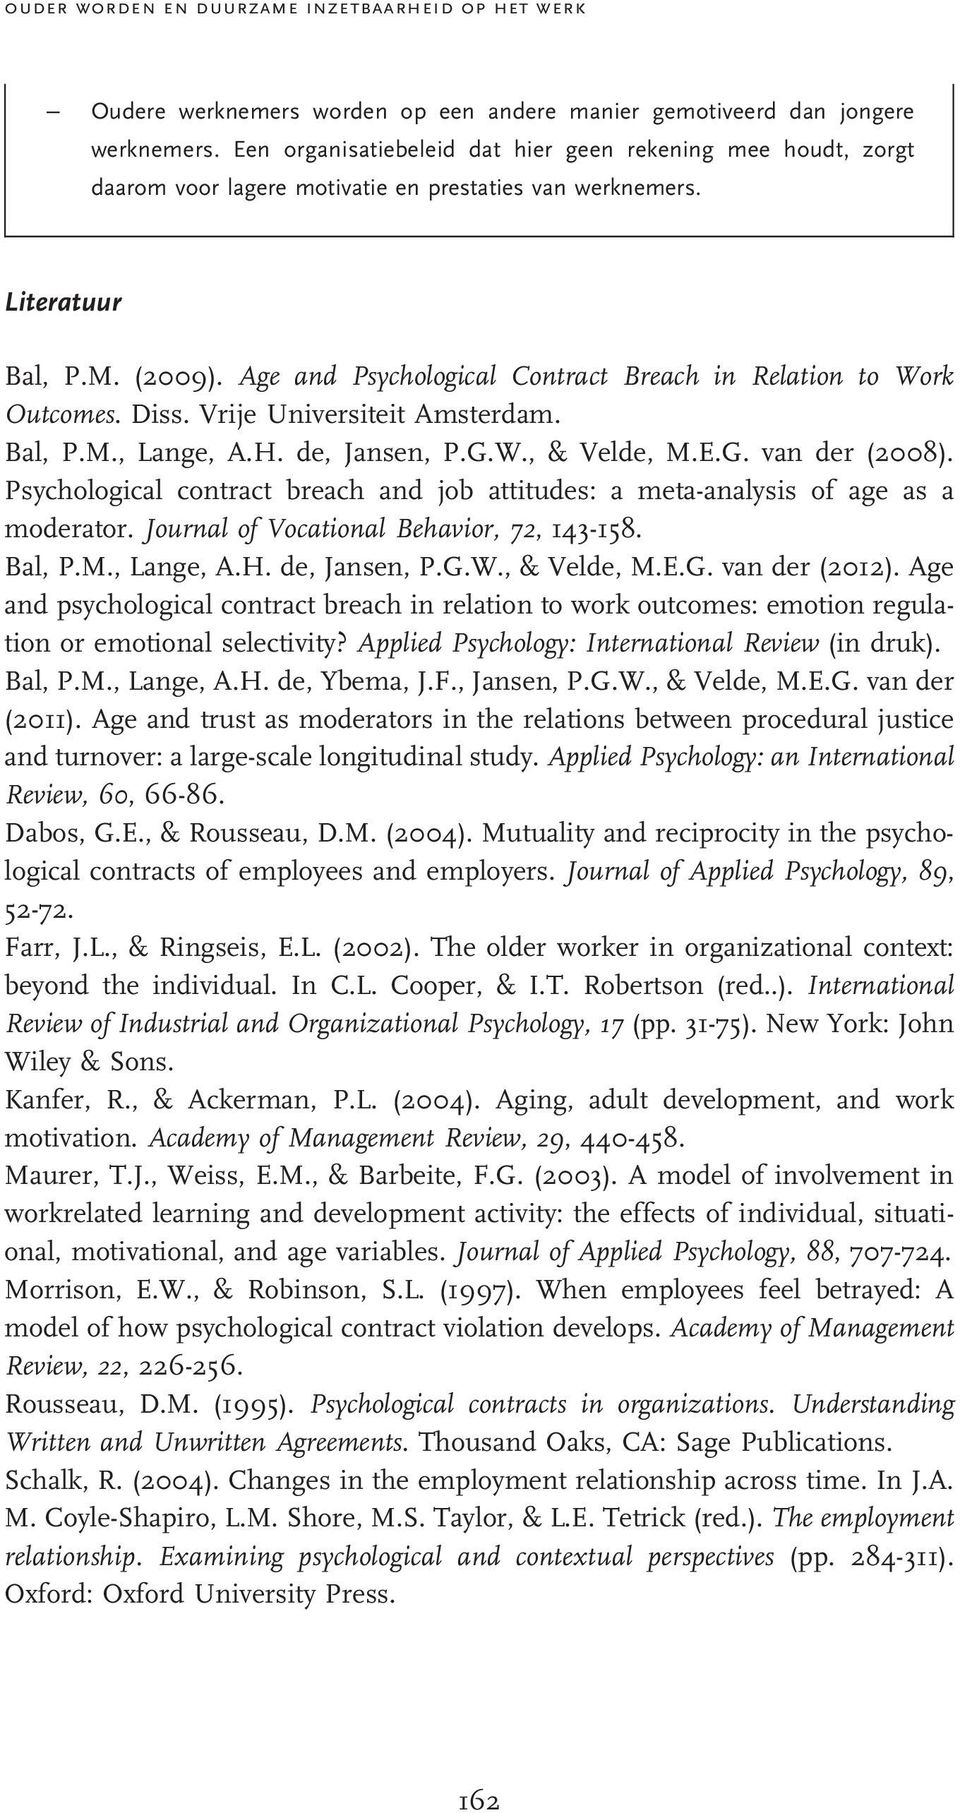 Age and Psychological Contract Breach in Relation to Work Outcomes. Diss. Vrije Universiteit Amsterdam. Bal, P.M., Lange, A.H. de, Jansen, P.G.W., & Velde, M.E.G. van der (2008).